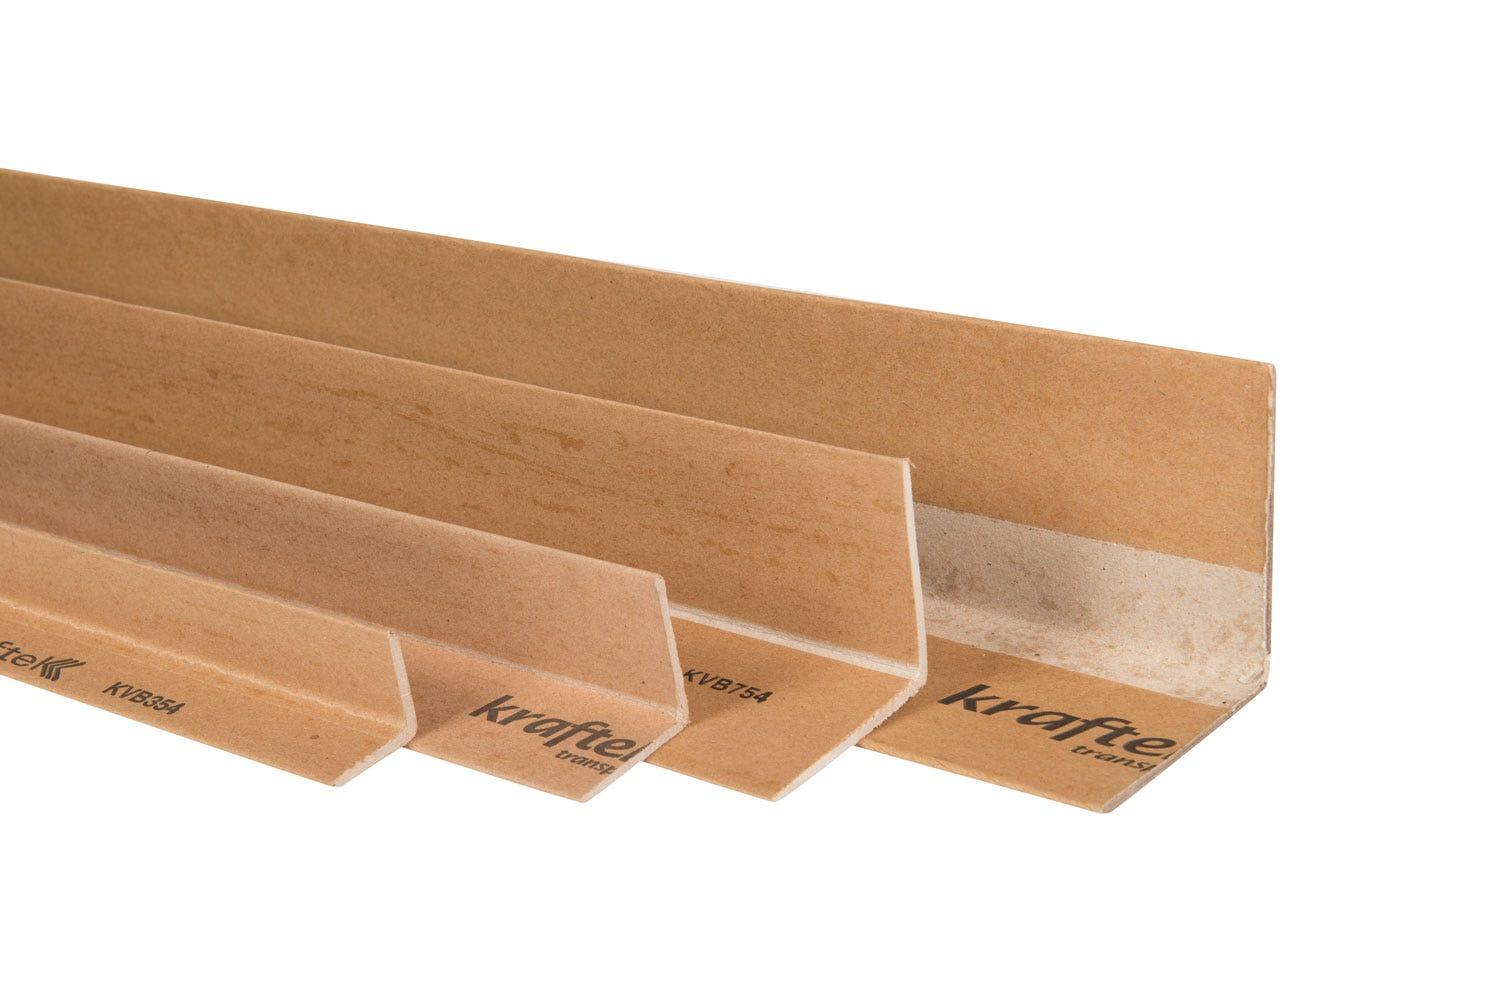 Kraftek® 6 x 80mm Edge Boards, 1500mm